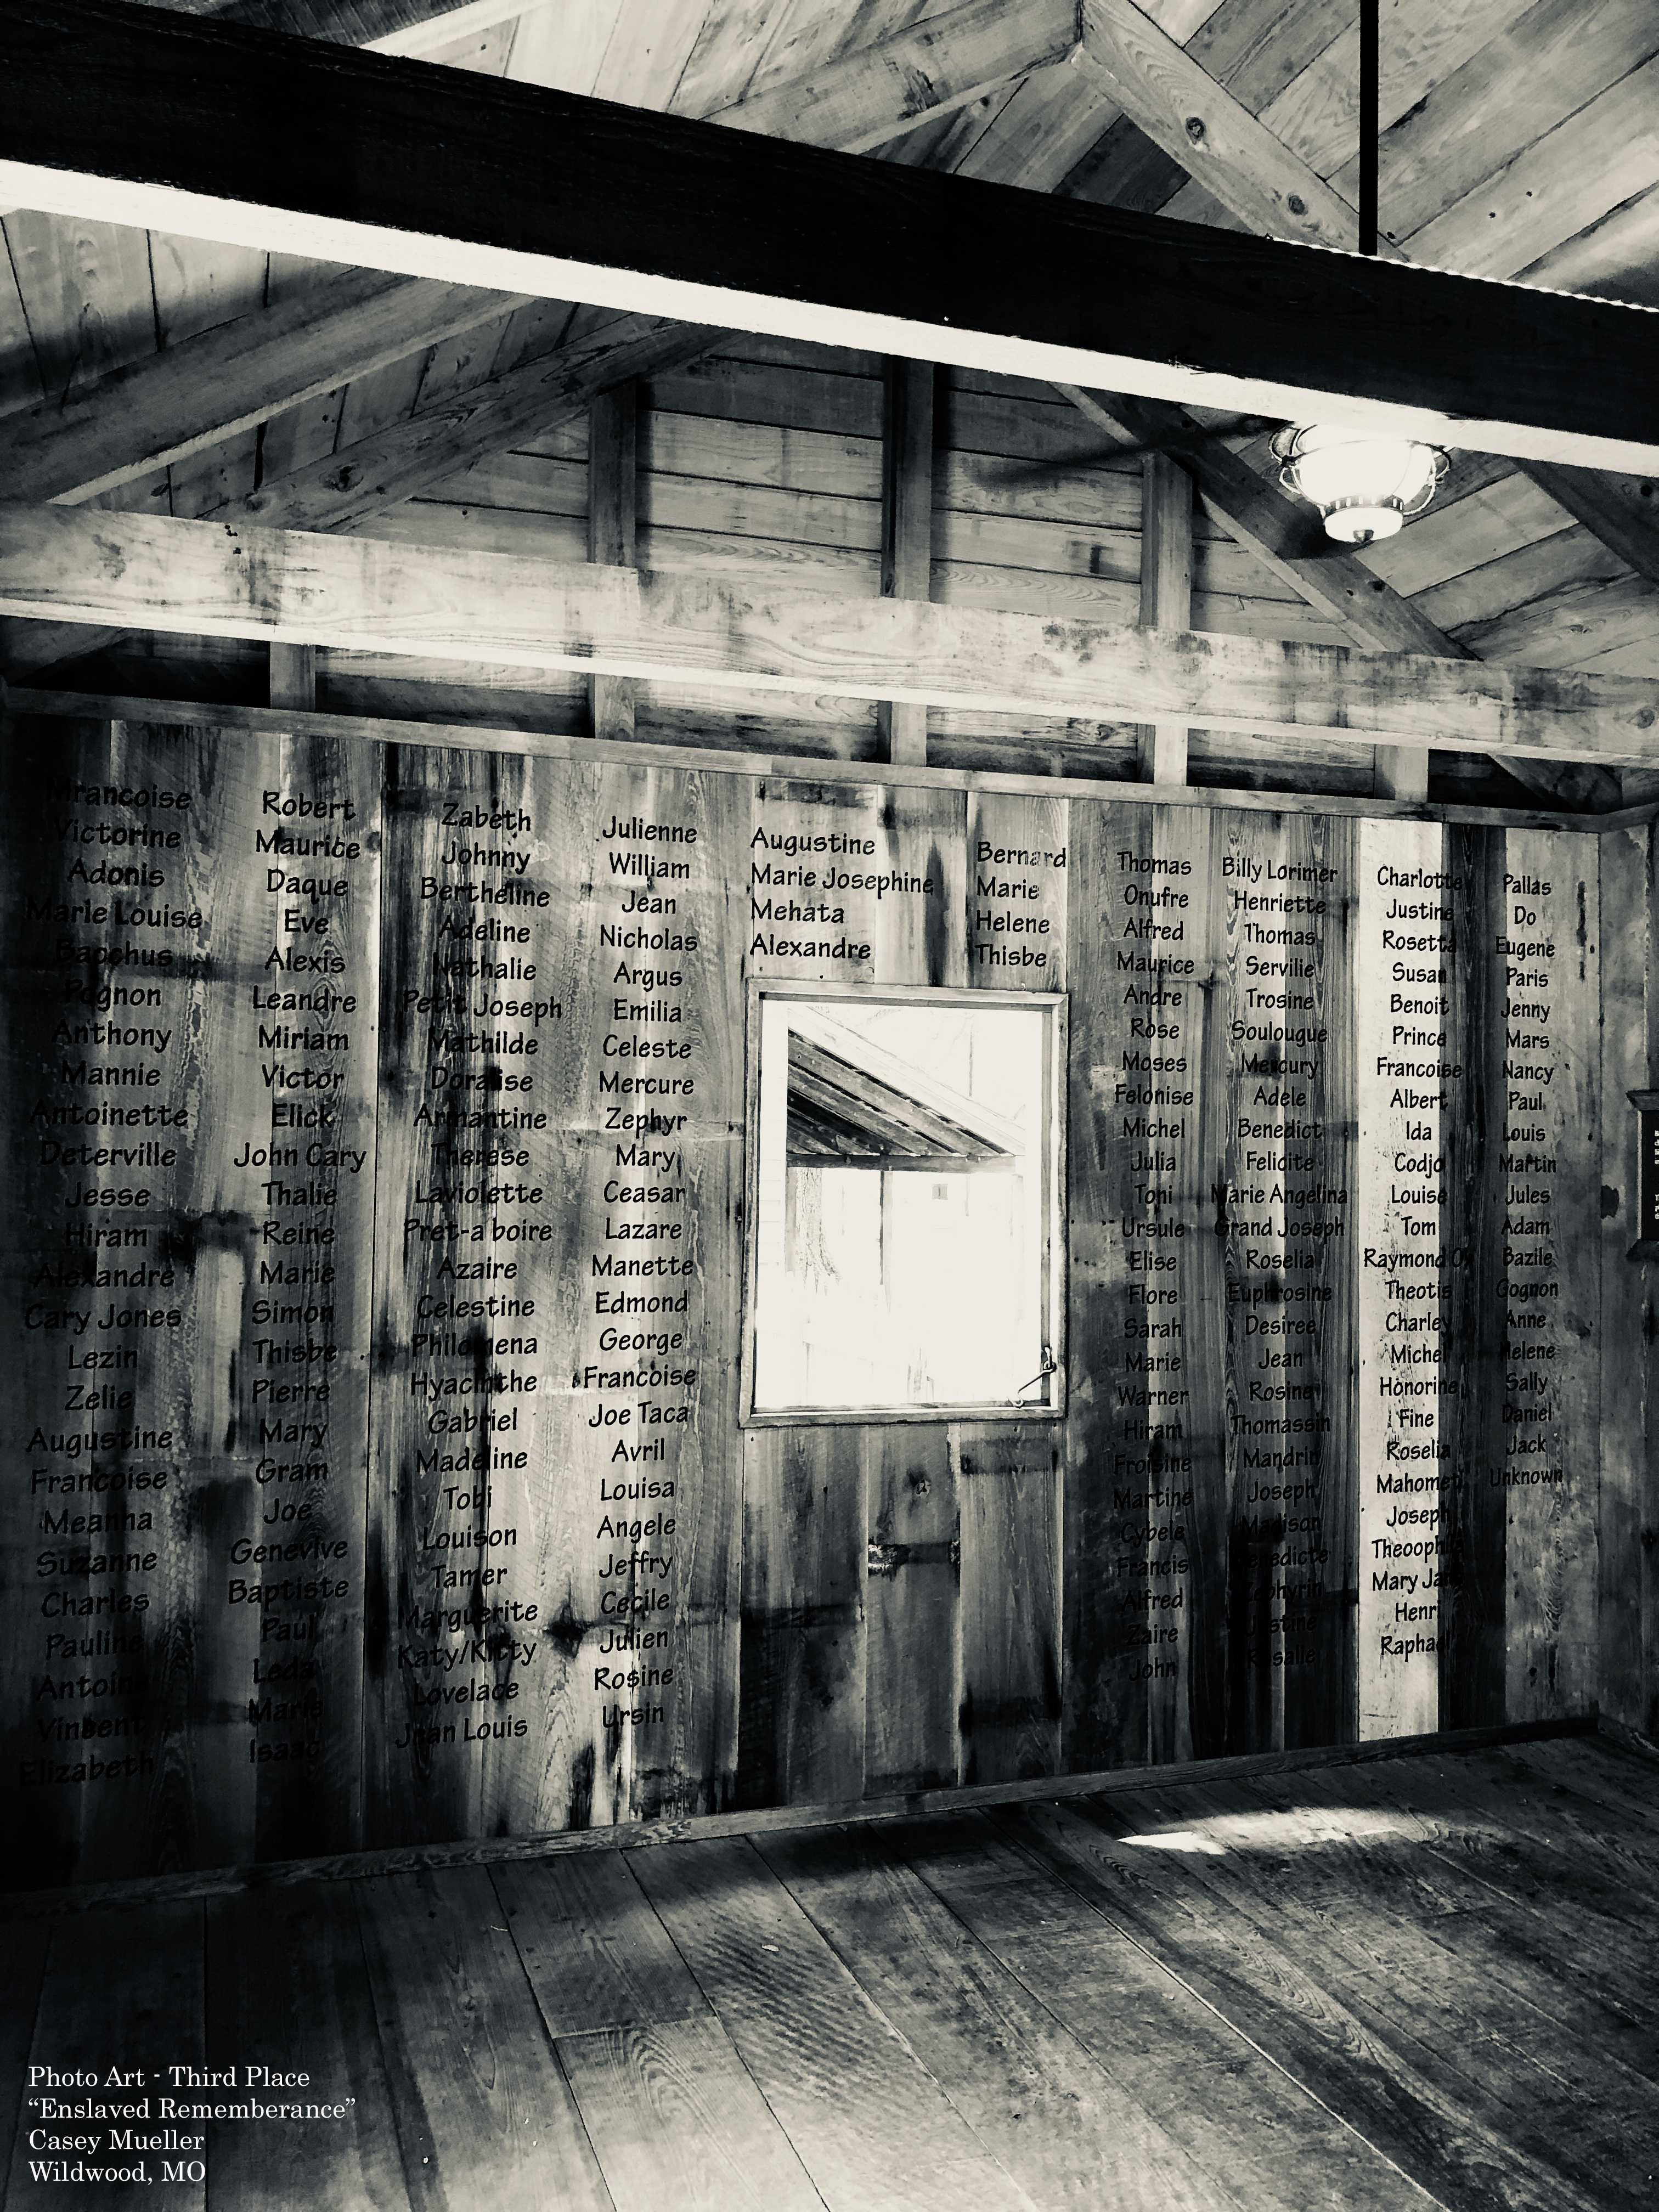 Rediscovering Photography On Summer >> Summer 2018 Photography Contest Winners Announced Oak Alley Foundation